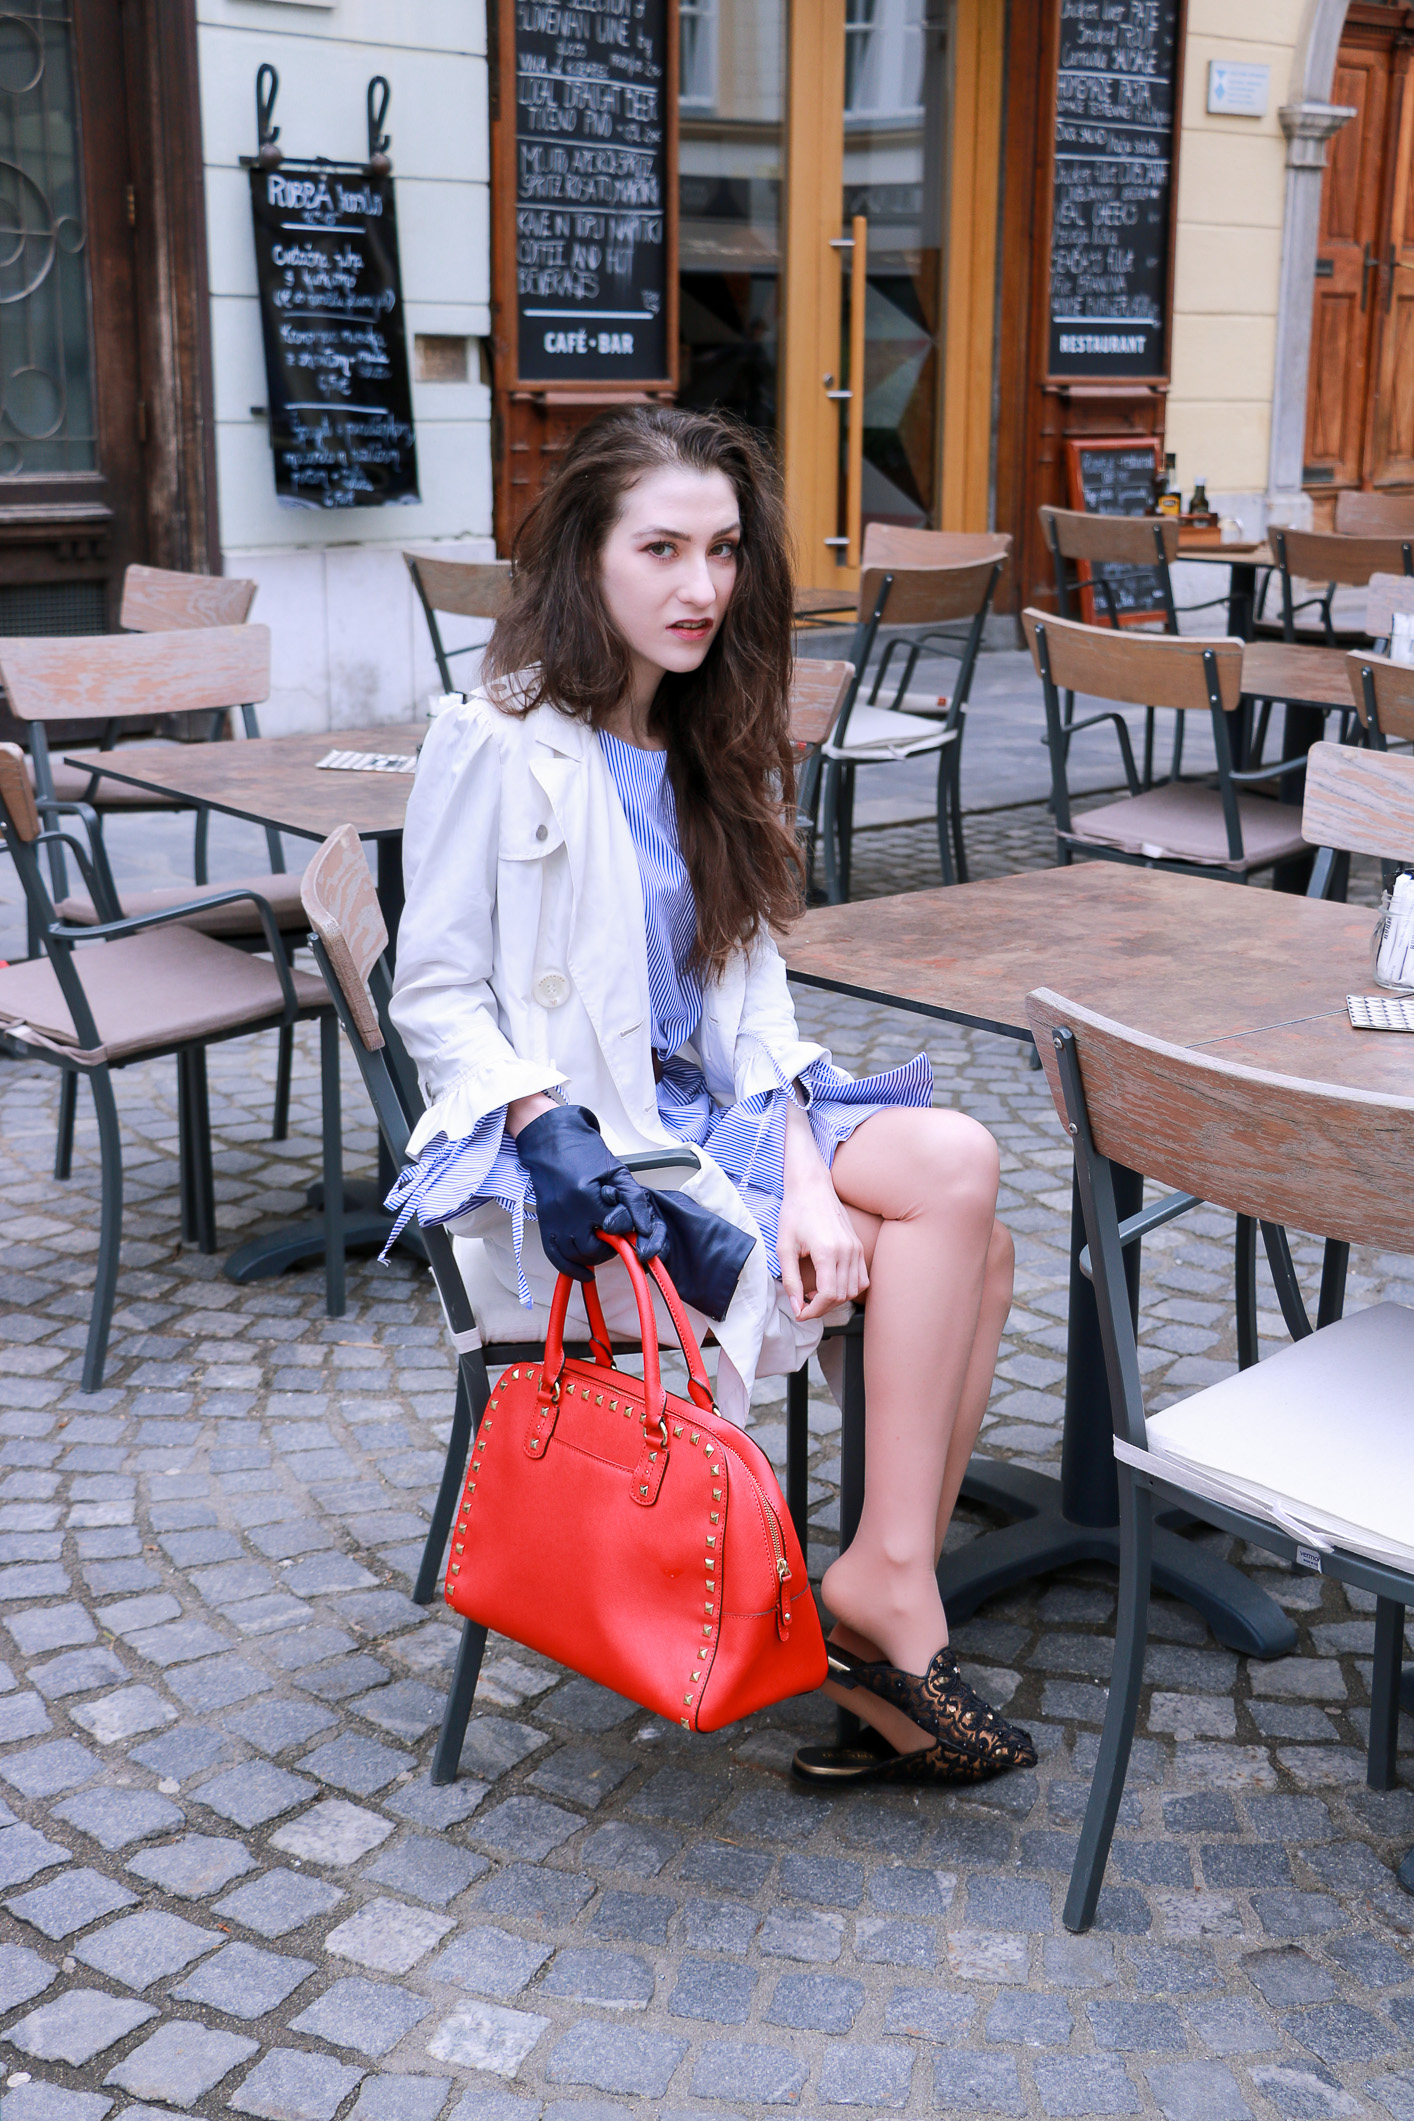 Fashion blogger Veronika Lipar of Brunette From Wall Street sharing how to wear shirt dress and slippers to lunch with girlfriends this spring